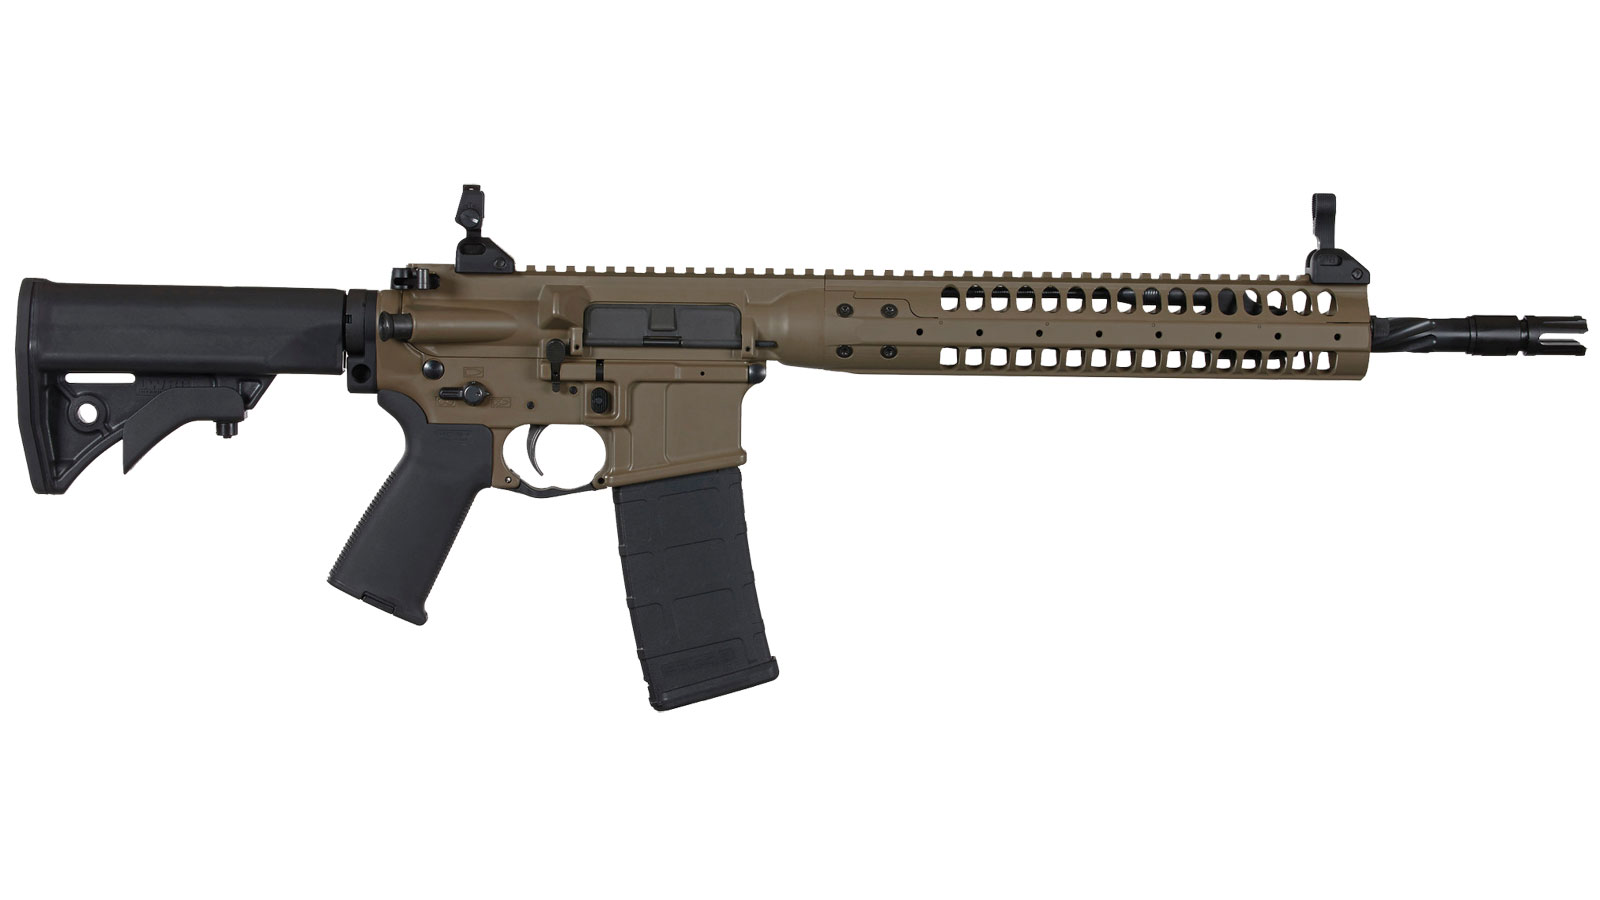 LWRC ICR5PBC16SPR Individual Carbine SPR Semi-Automatic 223 Remington|5.56 NATO 16.1 30+1 Adjustable Black Stk Patriot Brown in.